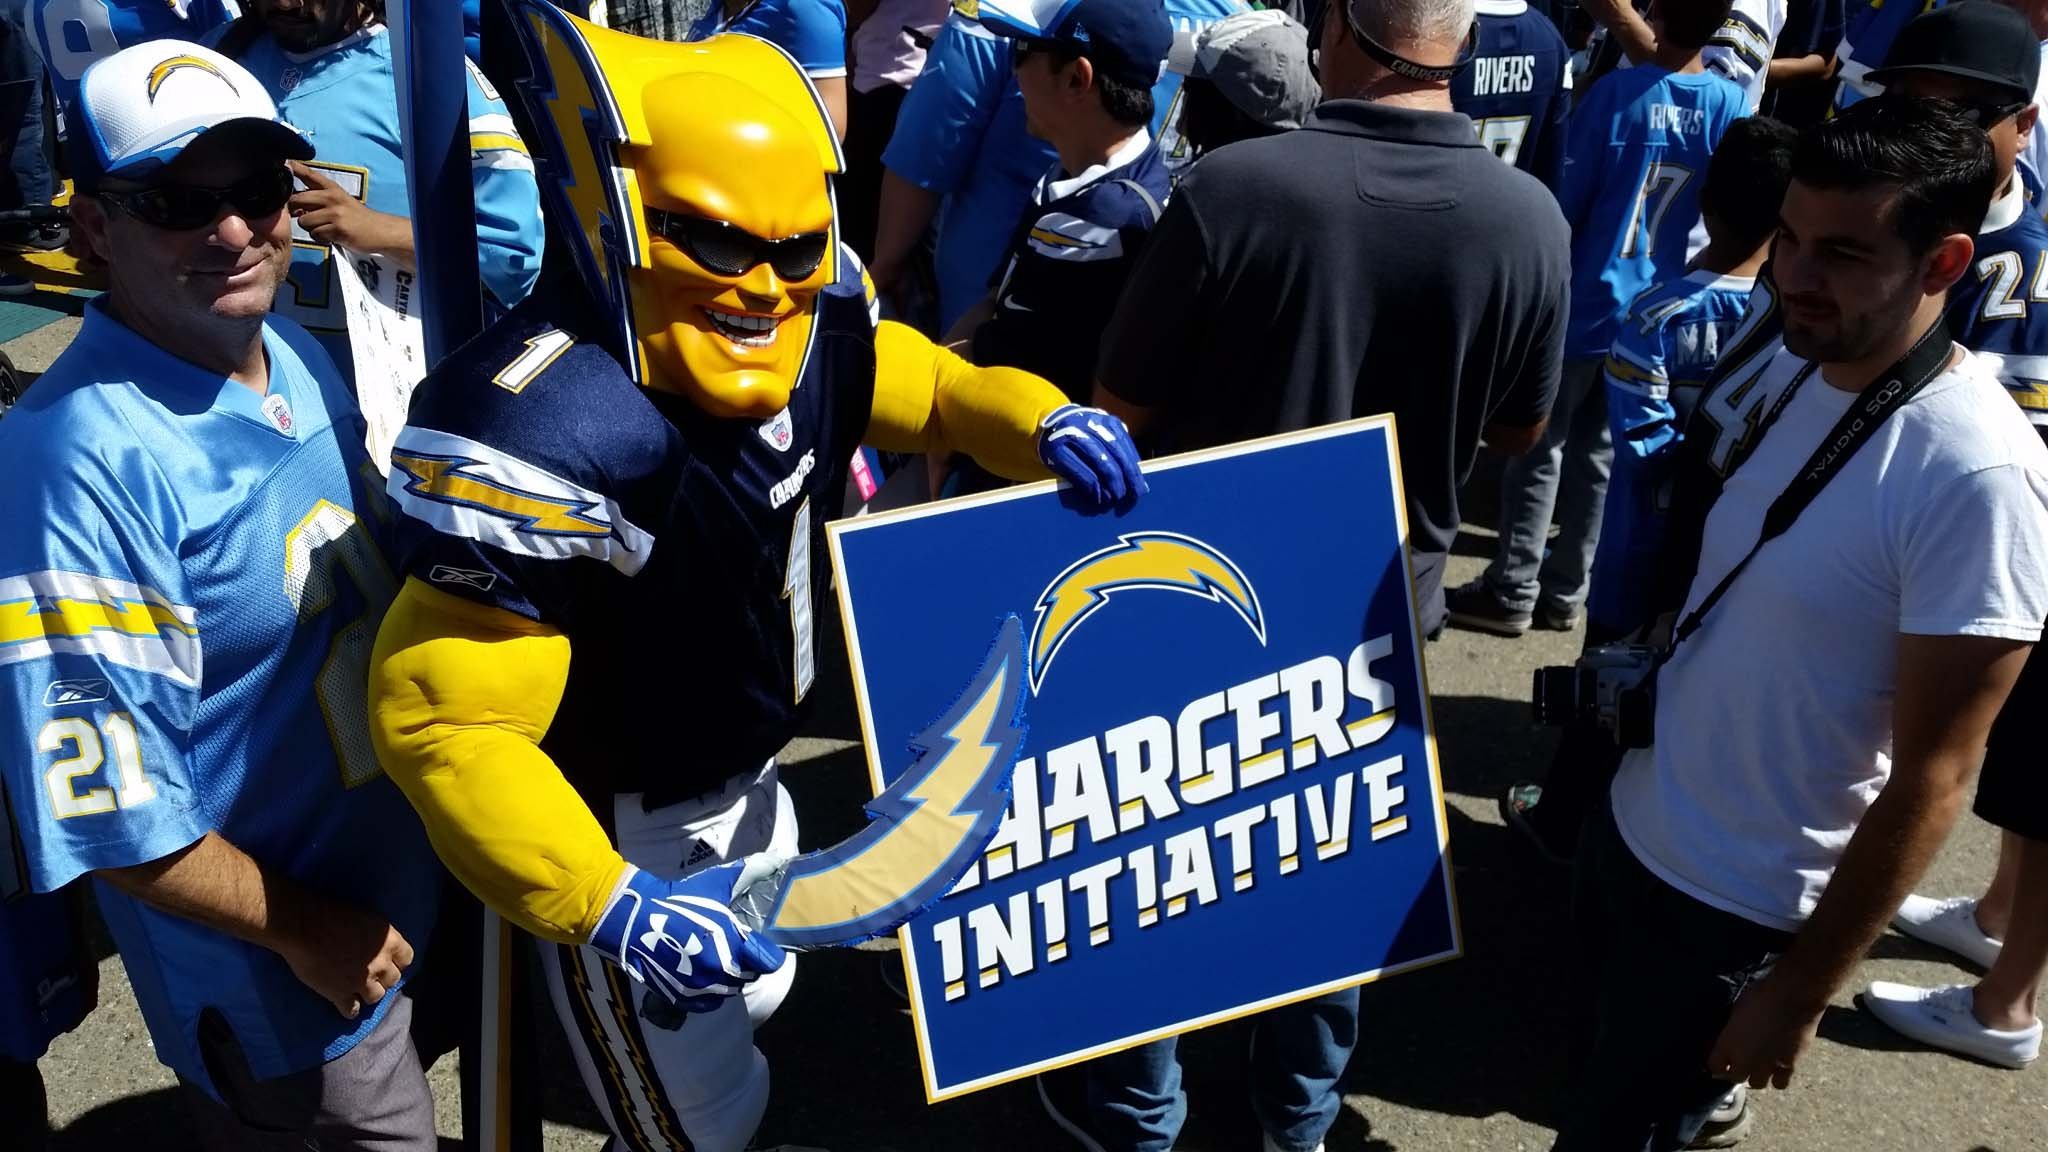 Chargers Initiative clears signature verification